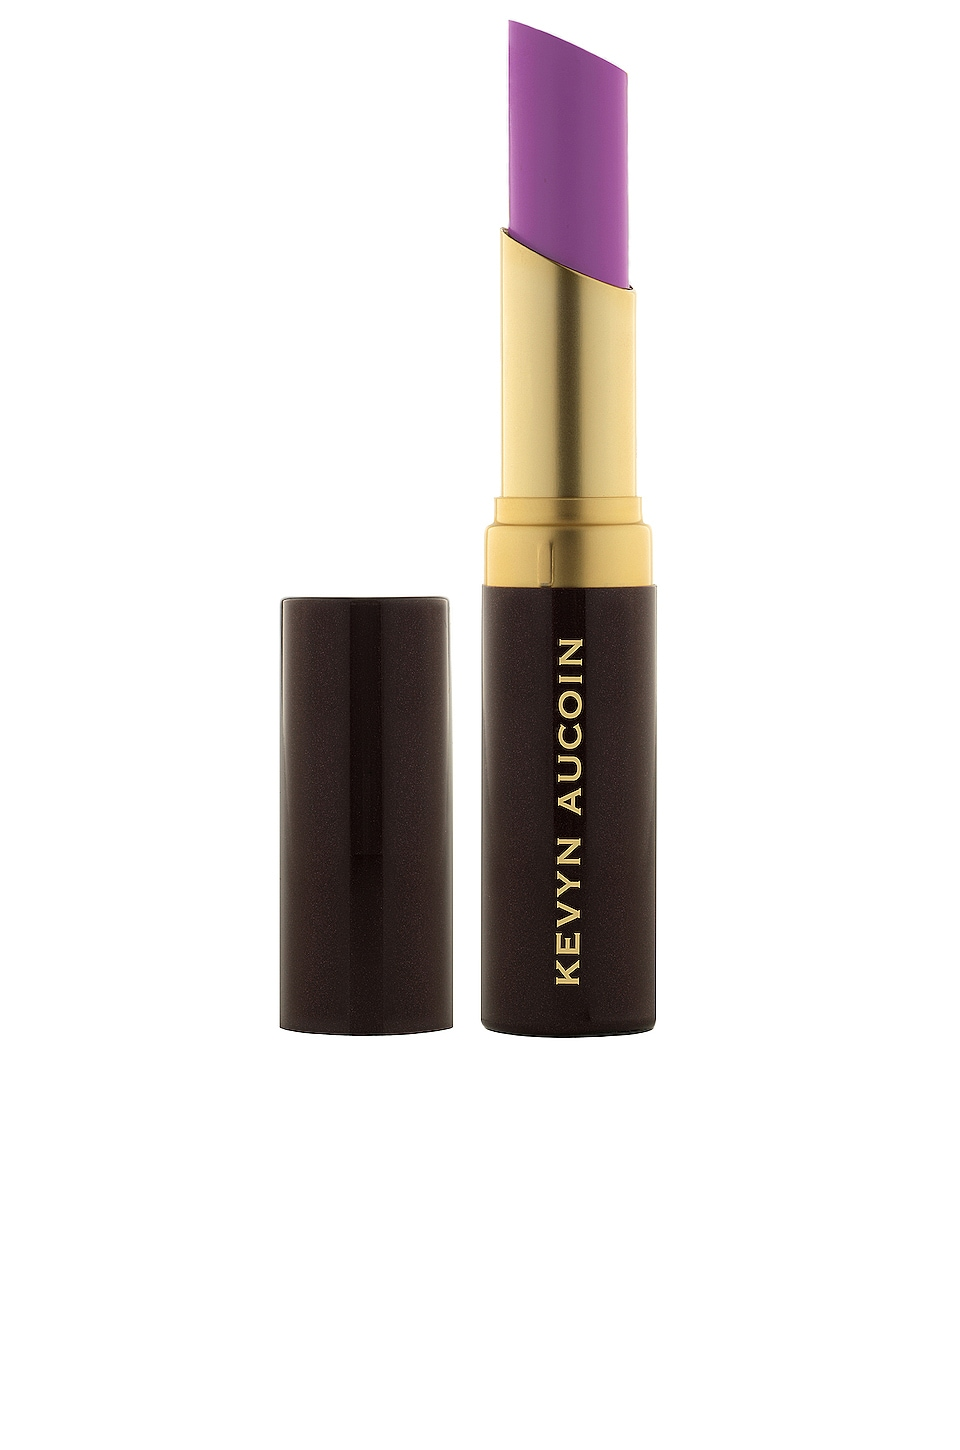 Kevyn Aucoin The Matte Lip Color in Persistence